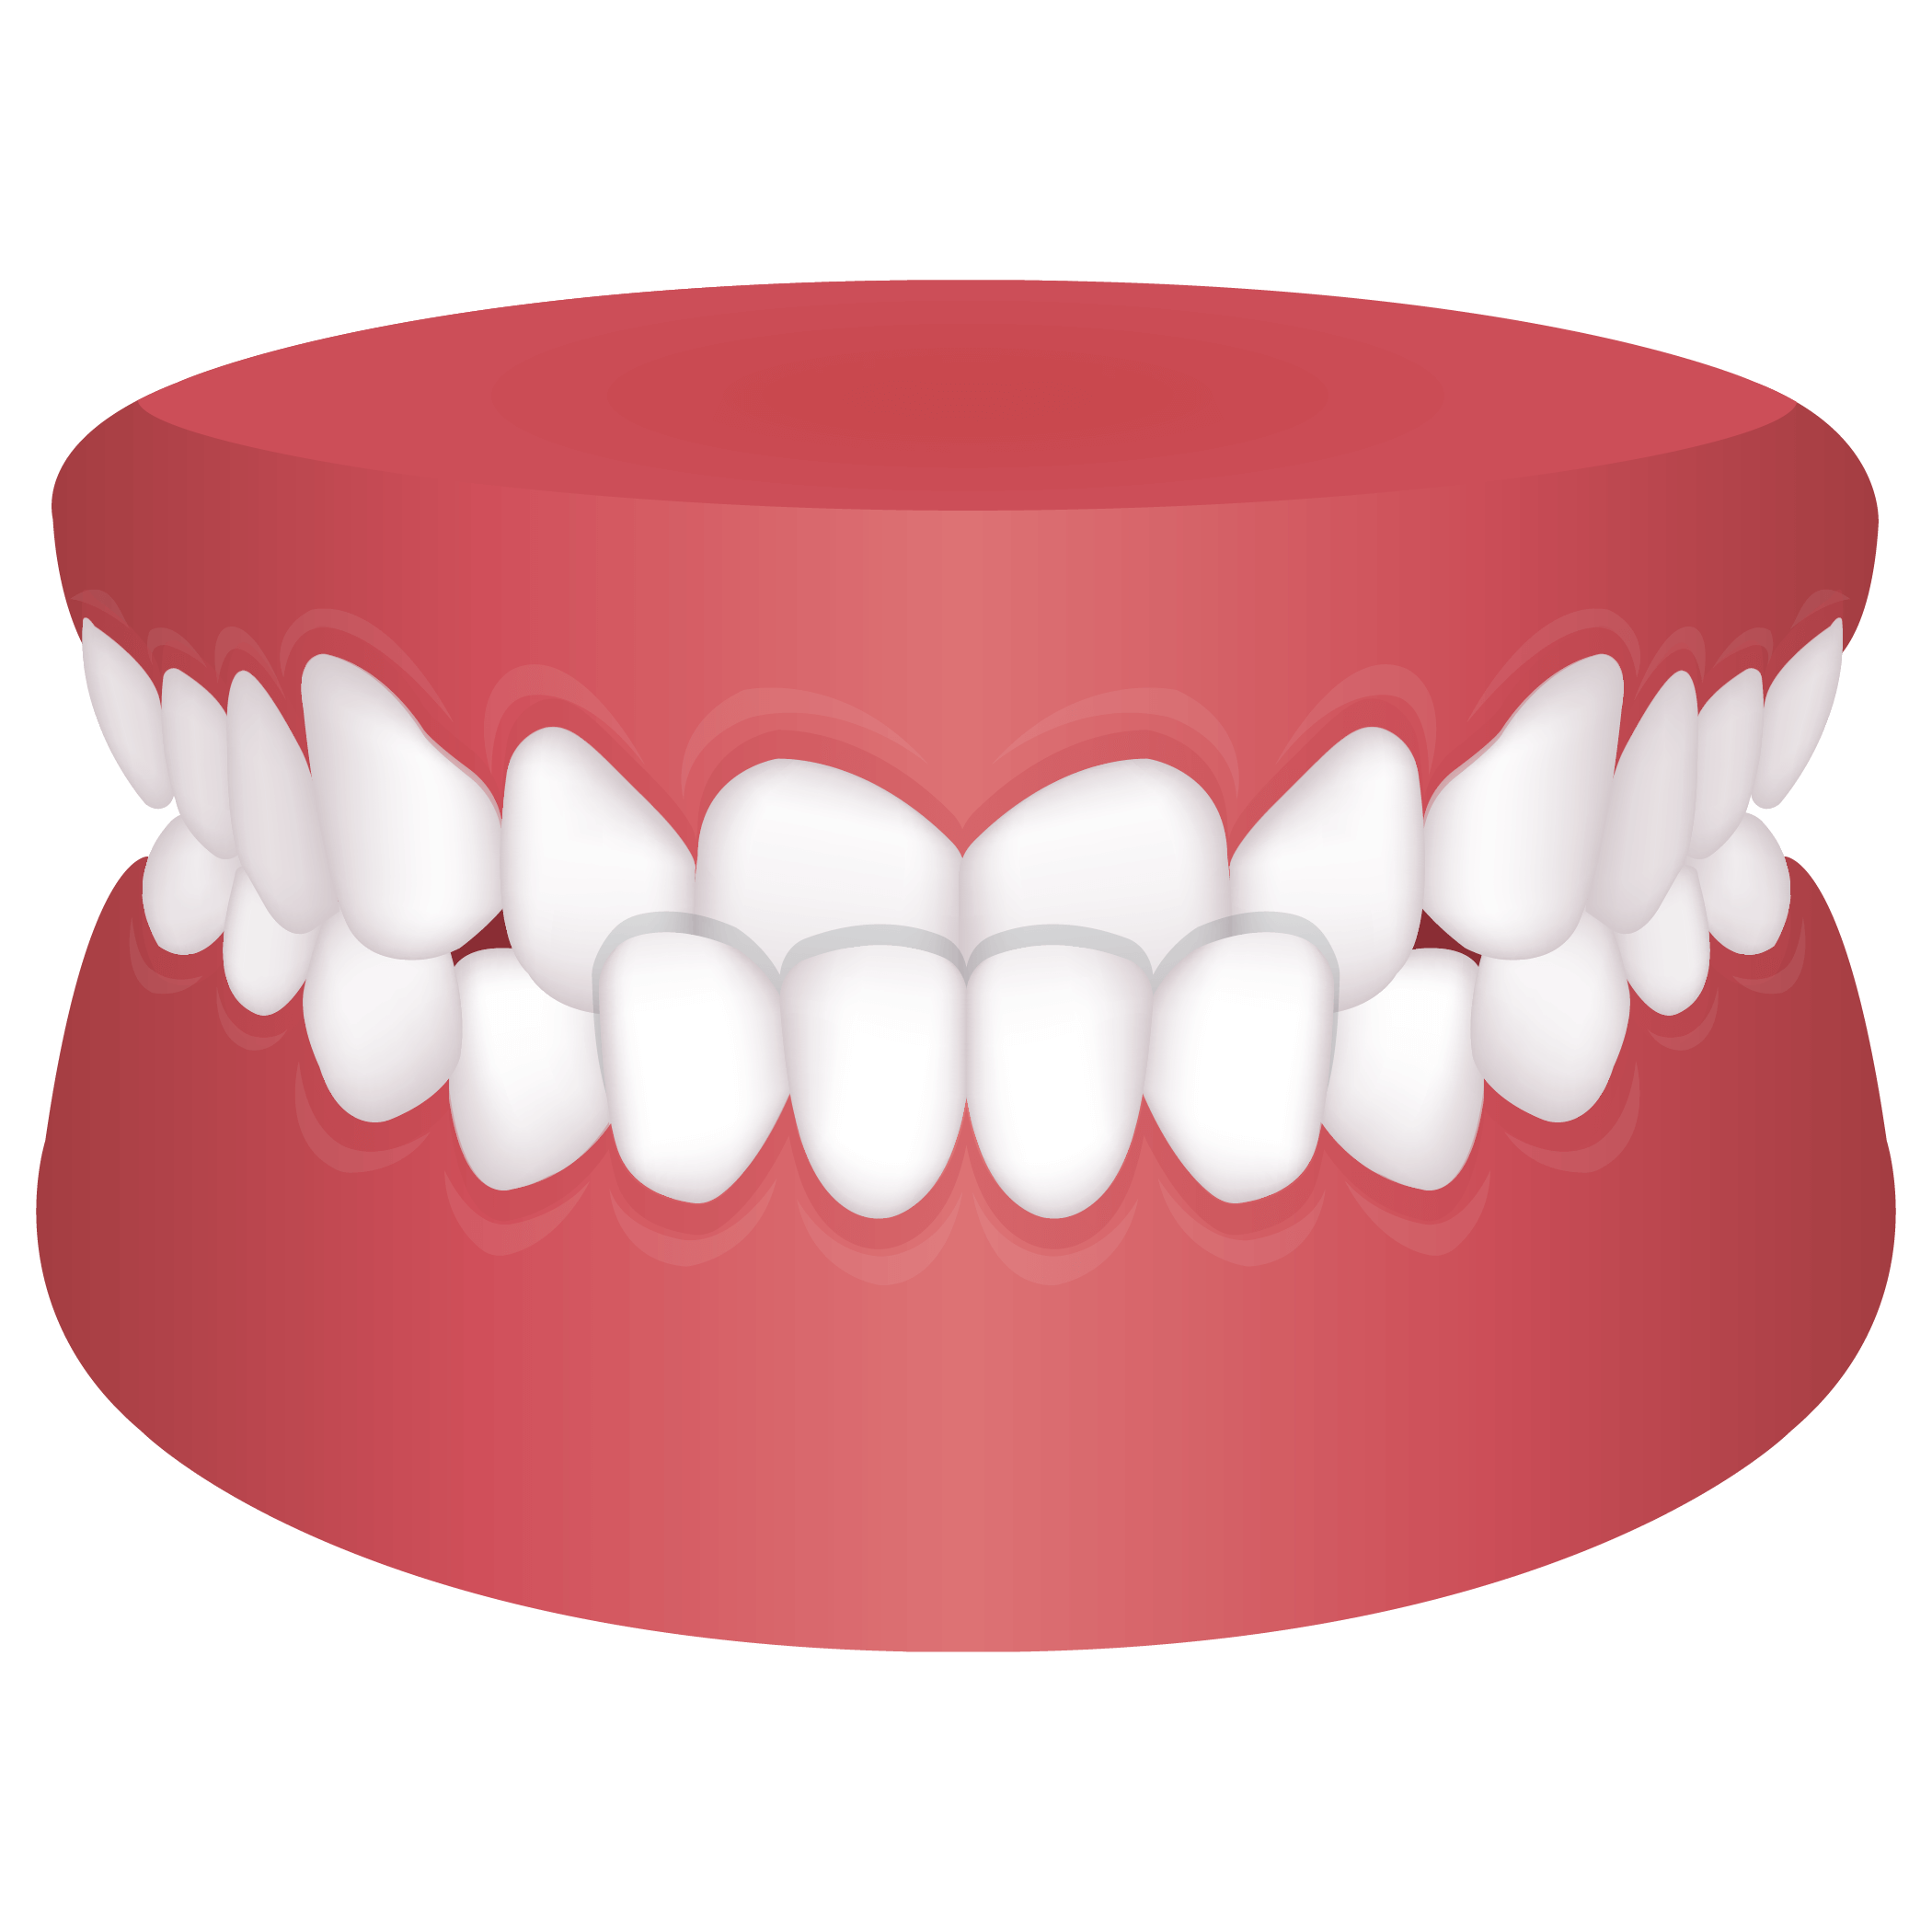 Mouth with underbite